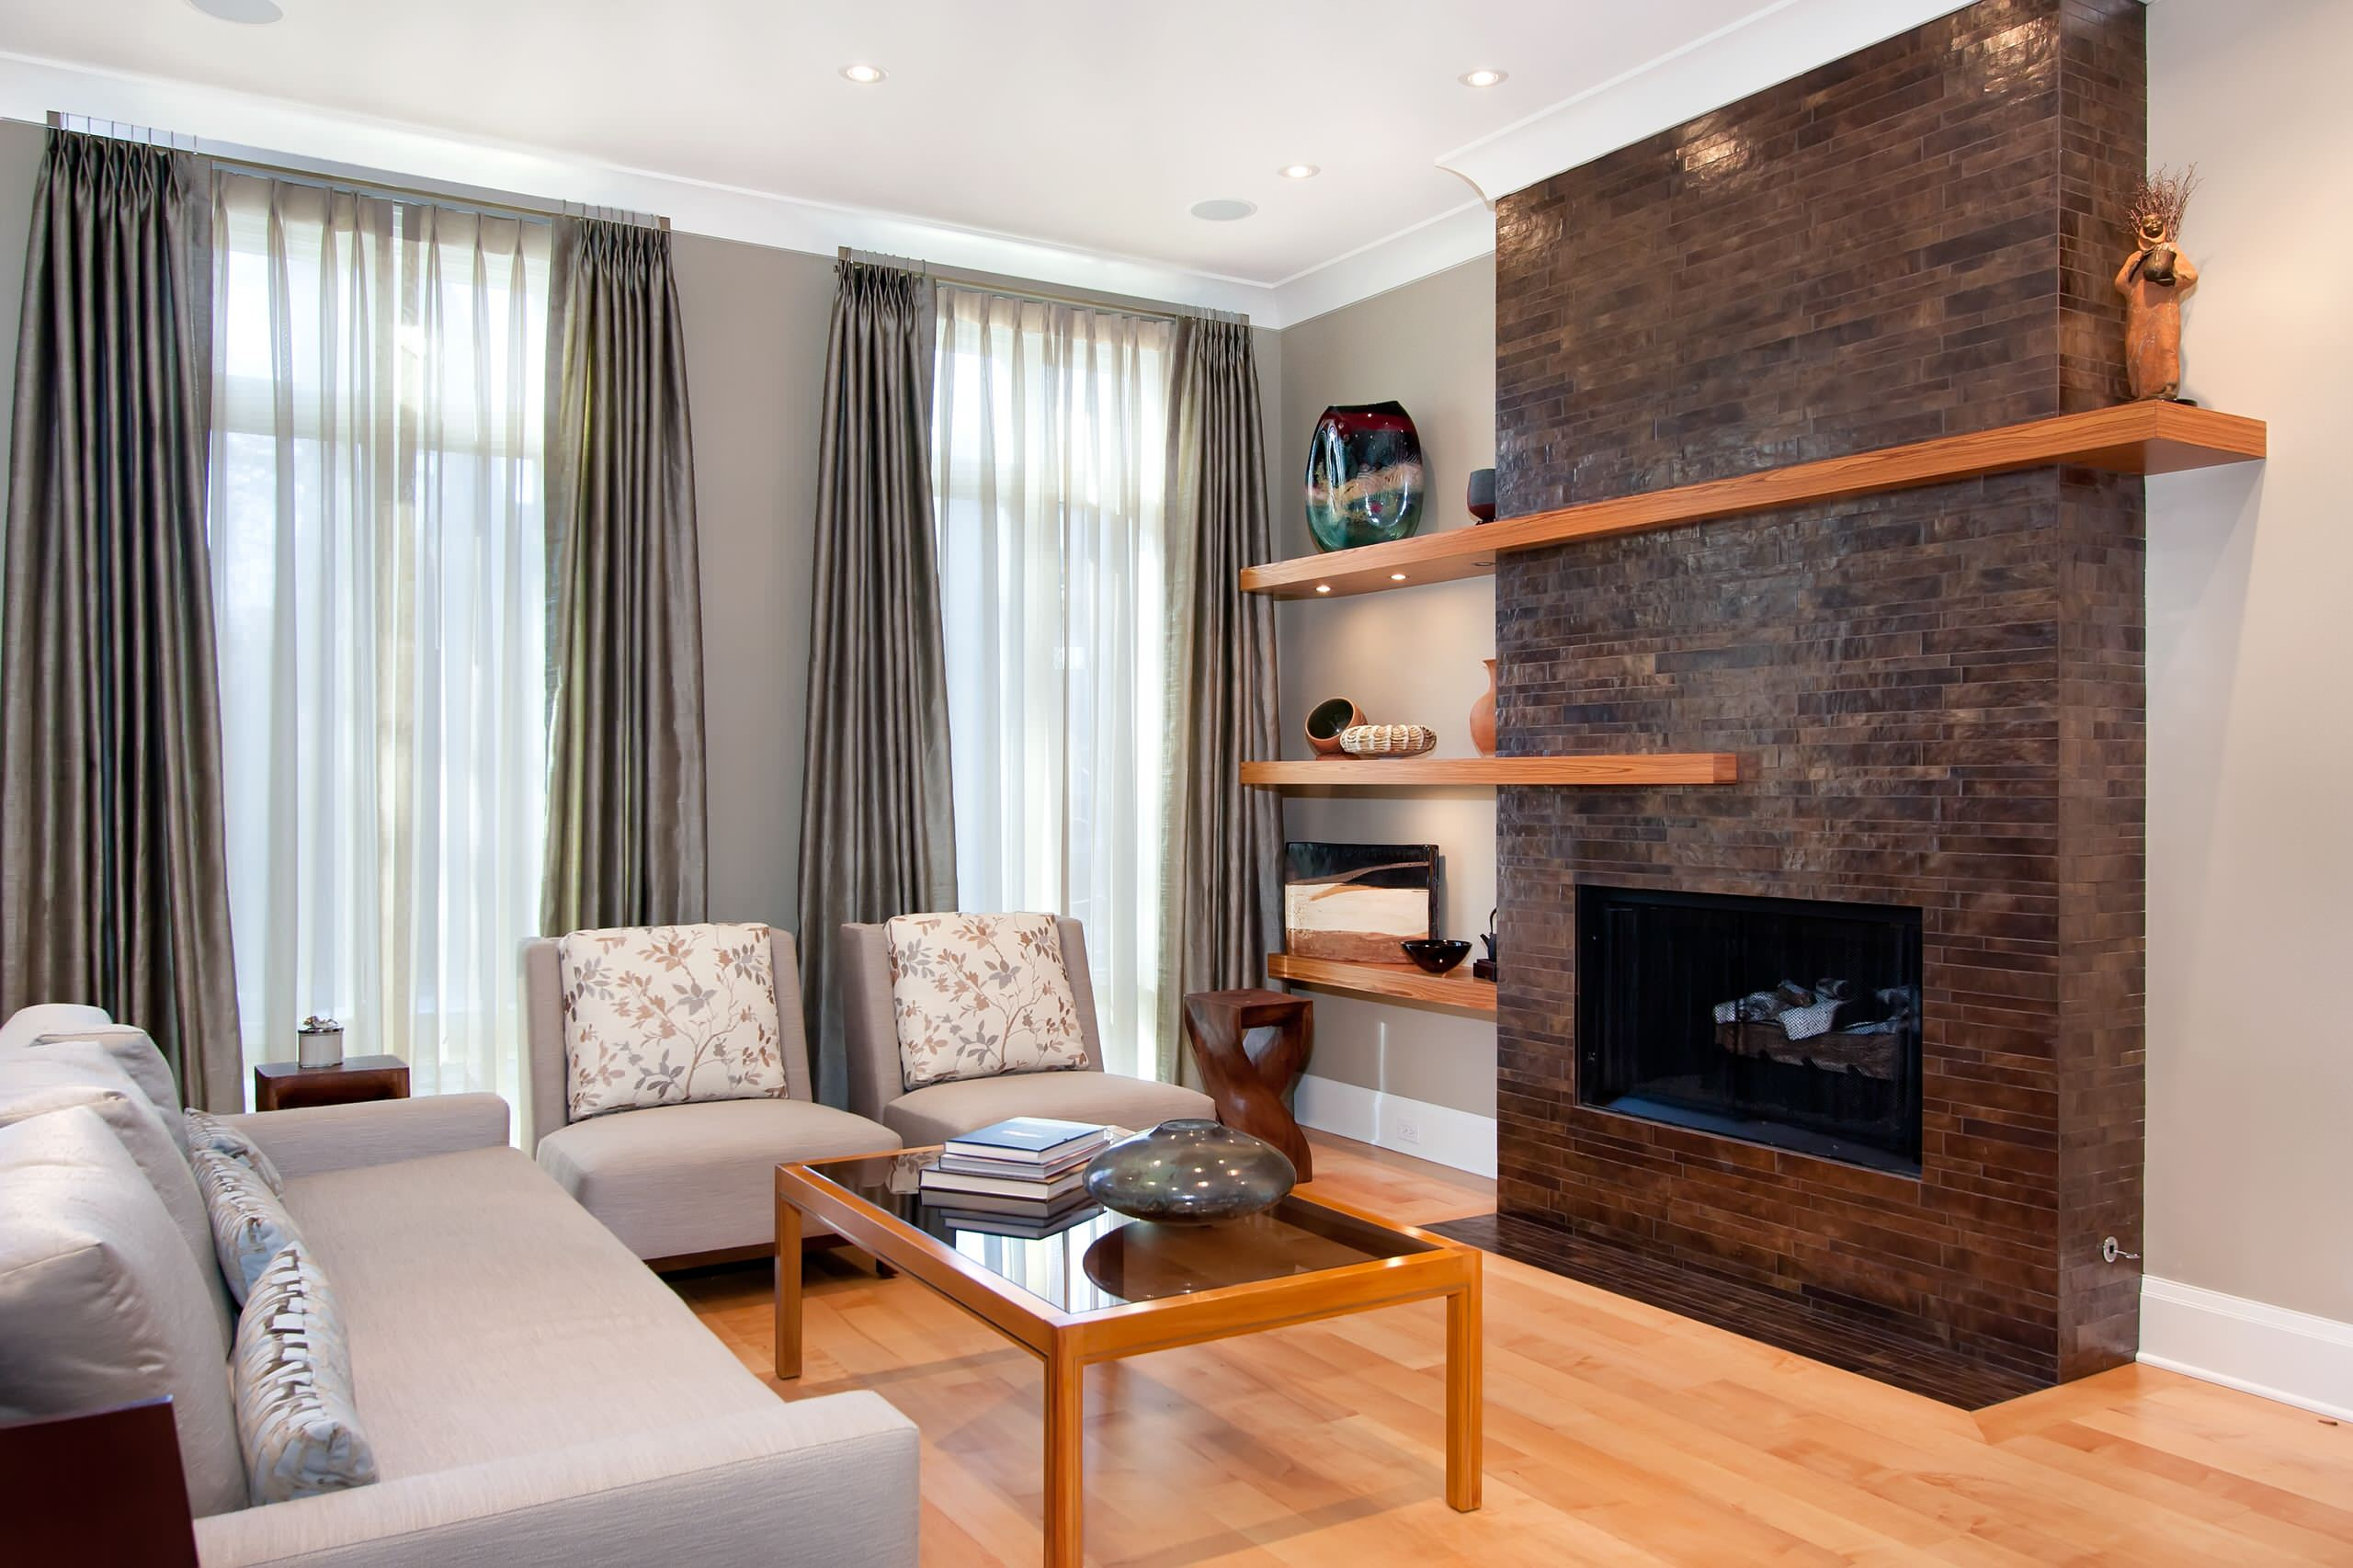 11 X 11 Ideas & Photos  Houzz